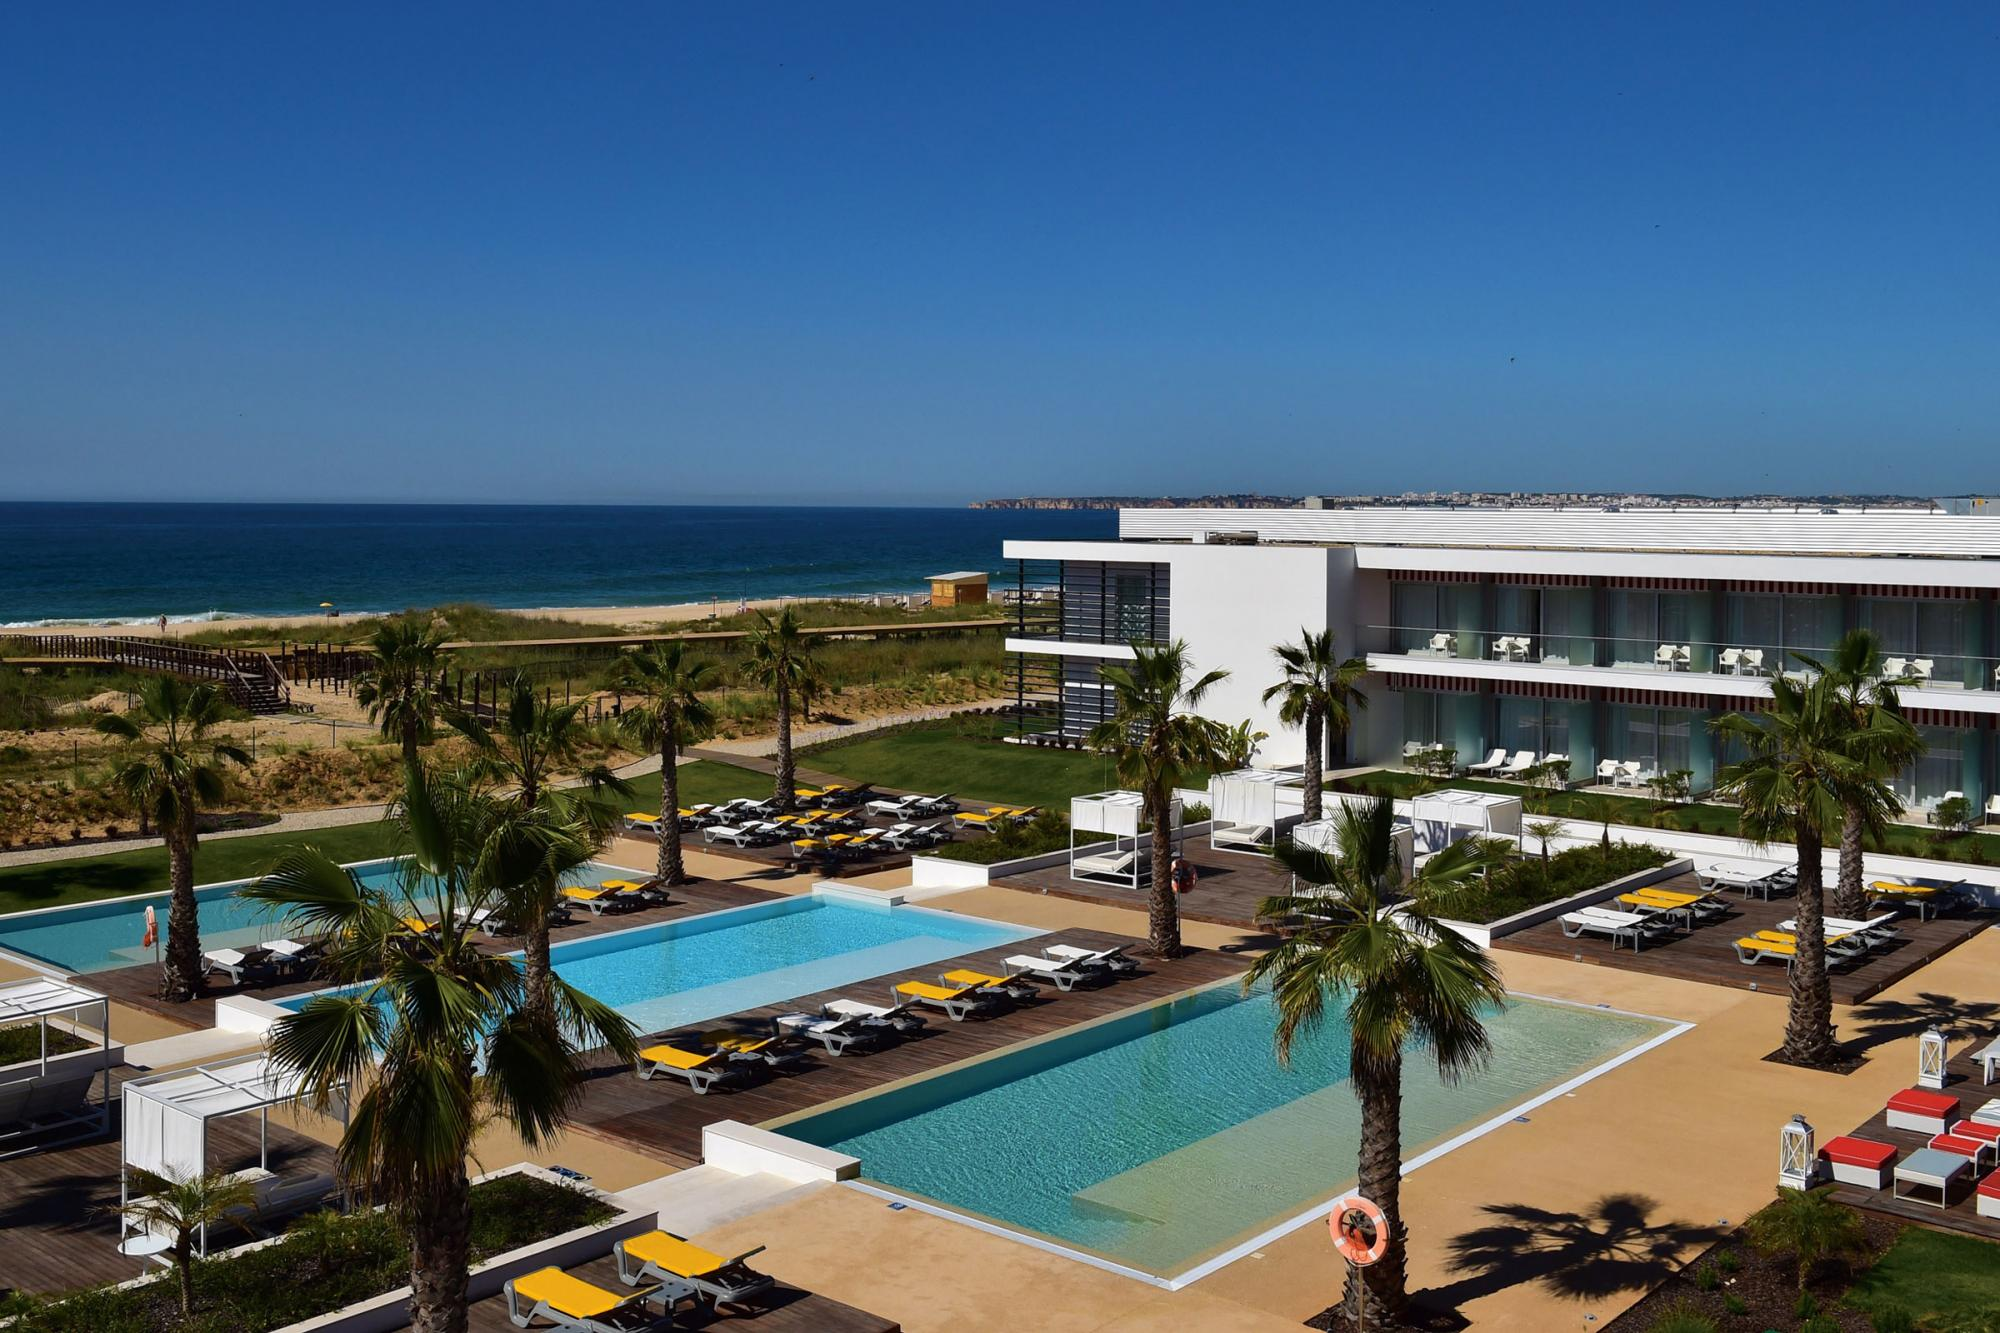 Hotel Tivoli Carvoeiro Algarve Booking Pestana Alvor South Beach Hotel Book Your Golf Trip In Algarve